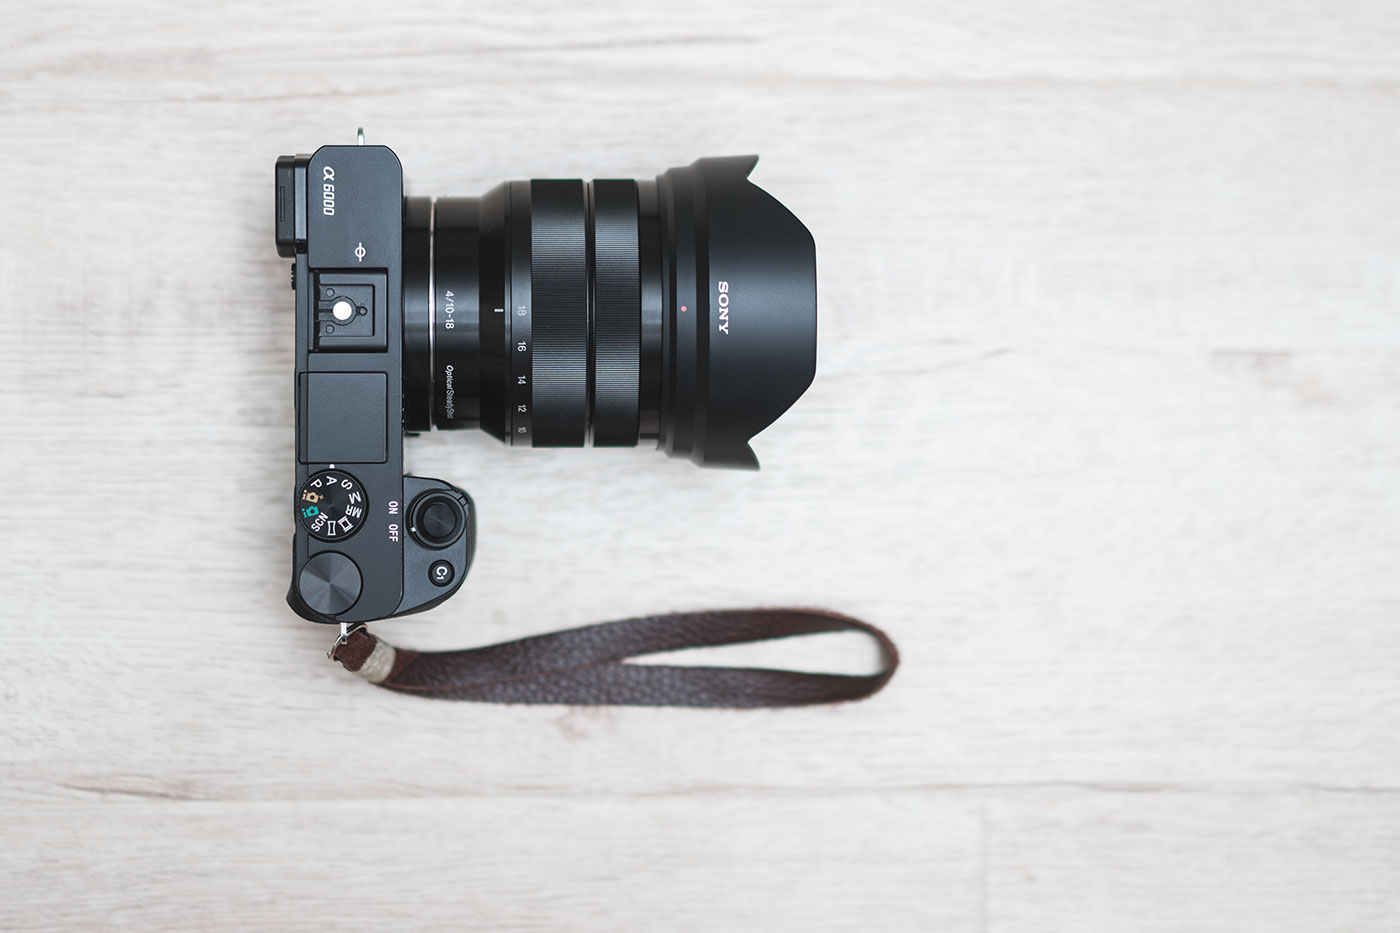 Dark Sony Sony E Oss Lens Sony Astrophotography Review Lonely Speck Sony A6300 Vs A6000 Image Quality Sony A6300 Vs A6000 Autofocus dpreview Sony A6300 Vs A6000